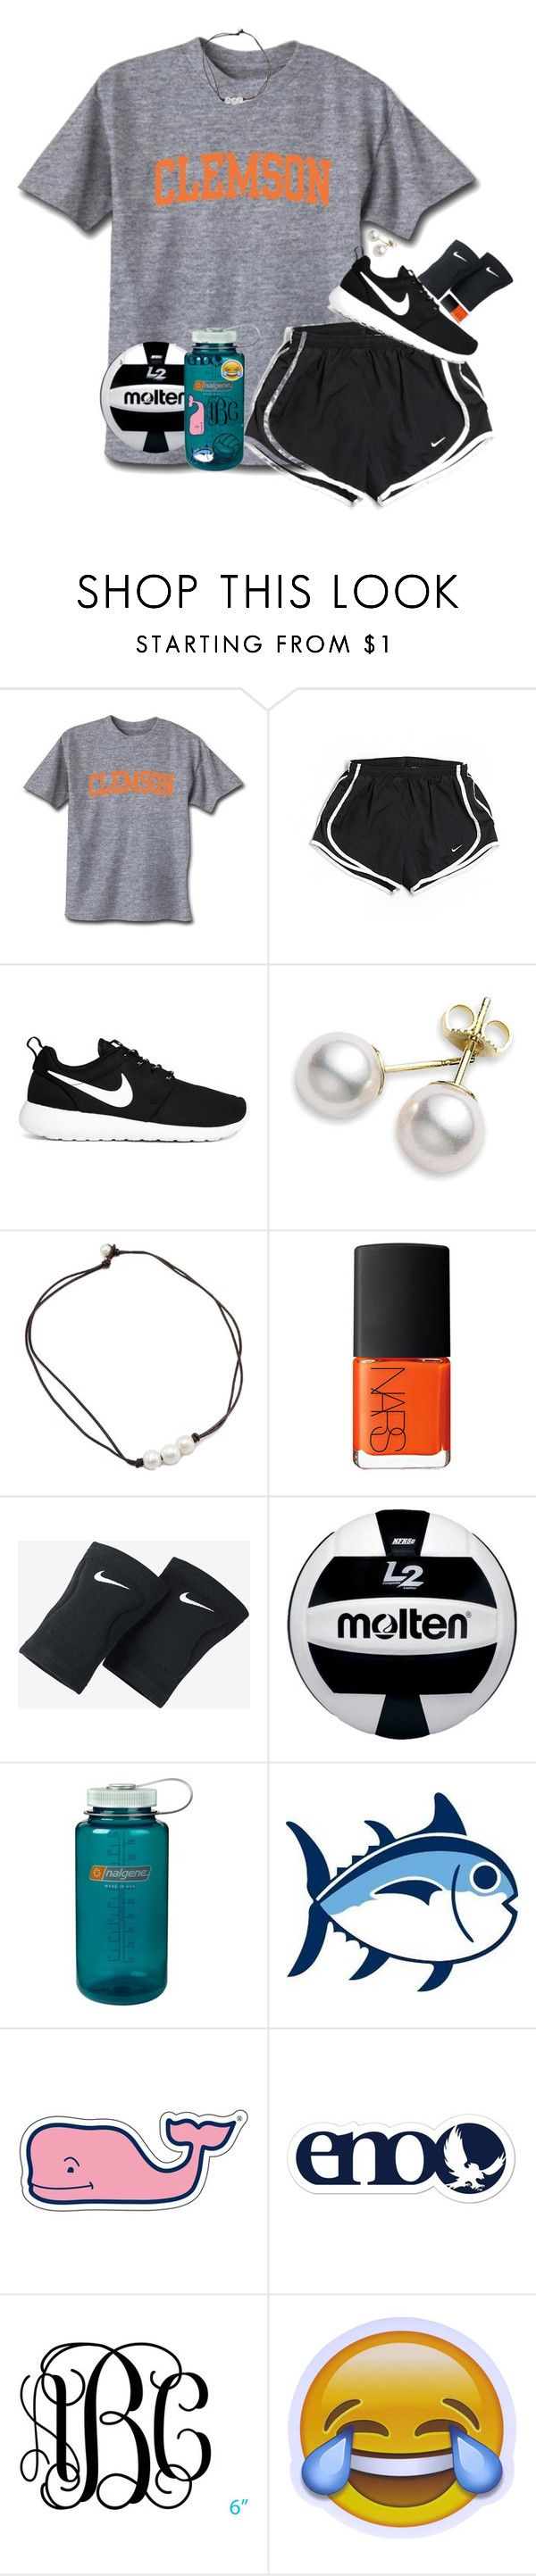 """Almost exact ootd yesterday to the first day of VBall!"" by evedriggers ❤ liked on Polyvore featuring NIKE, Mikimoto, NARS Cosmetics, Nalgene, Southern Tide and Vineyard Vines"